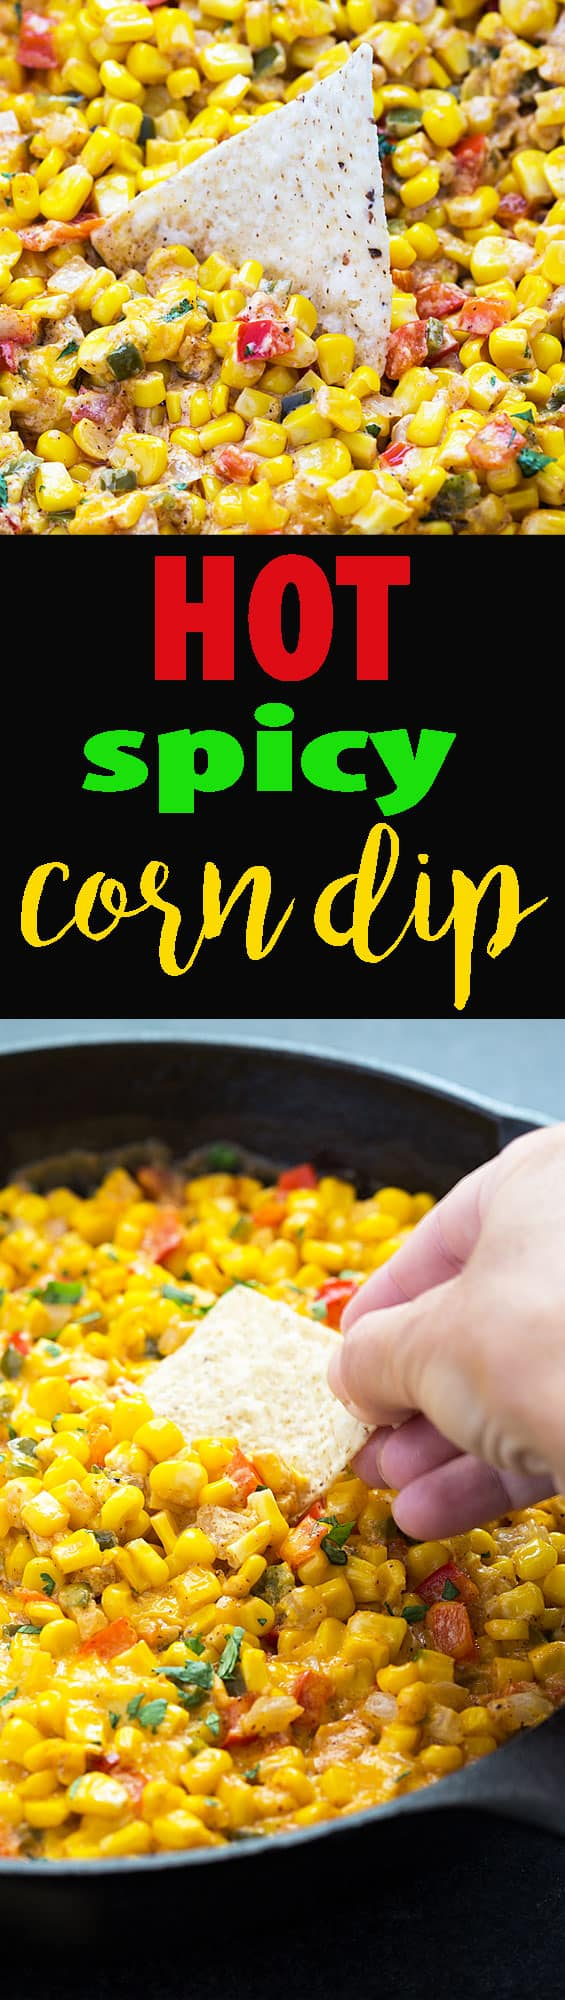 A two image vertical collage of hot spicy corn dip with overlay text in the center.